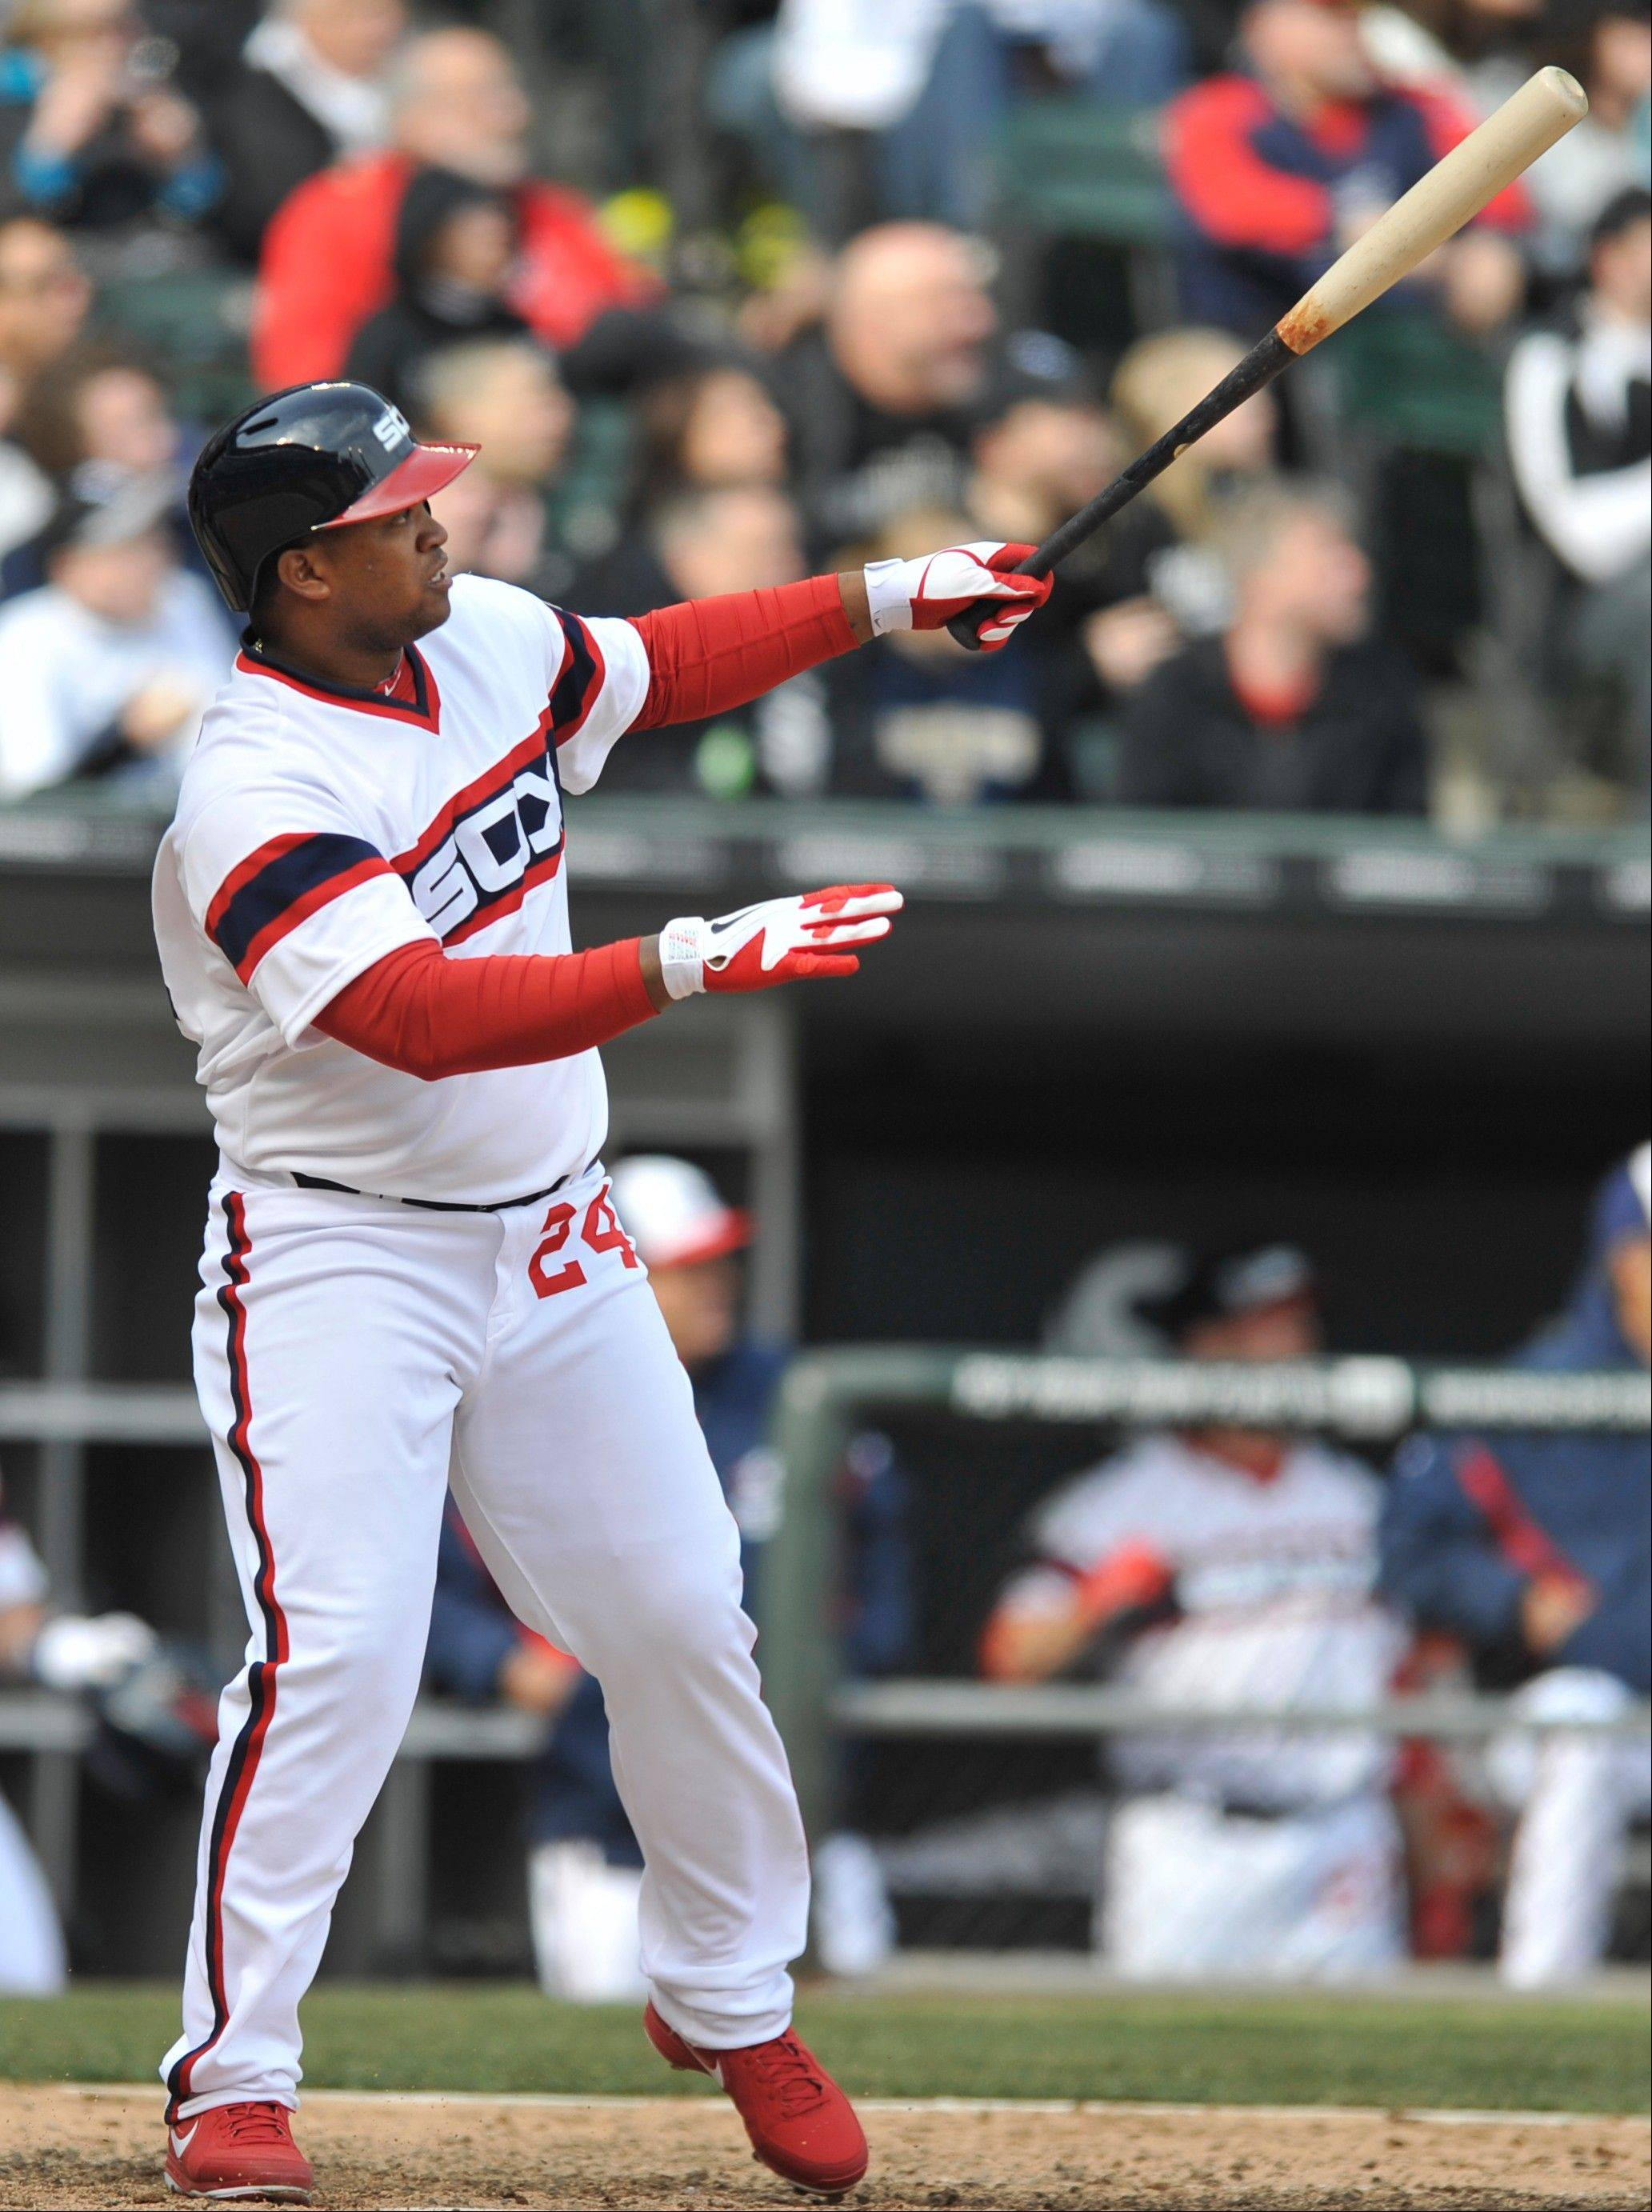 Dayan Viciedo watches his walk-off home run in the 10th inning Sunday at U.S. Cellular Field.